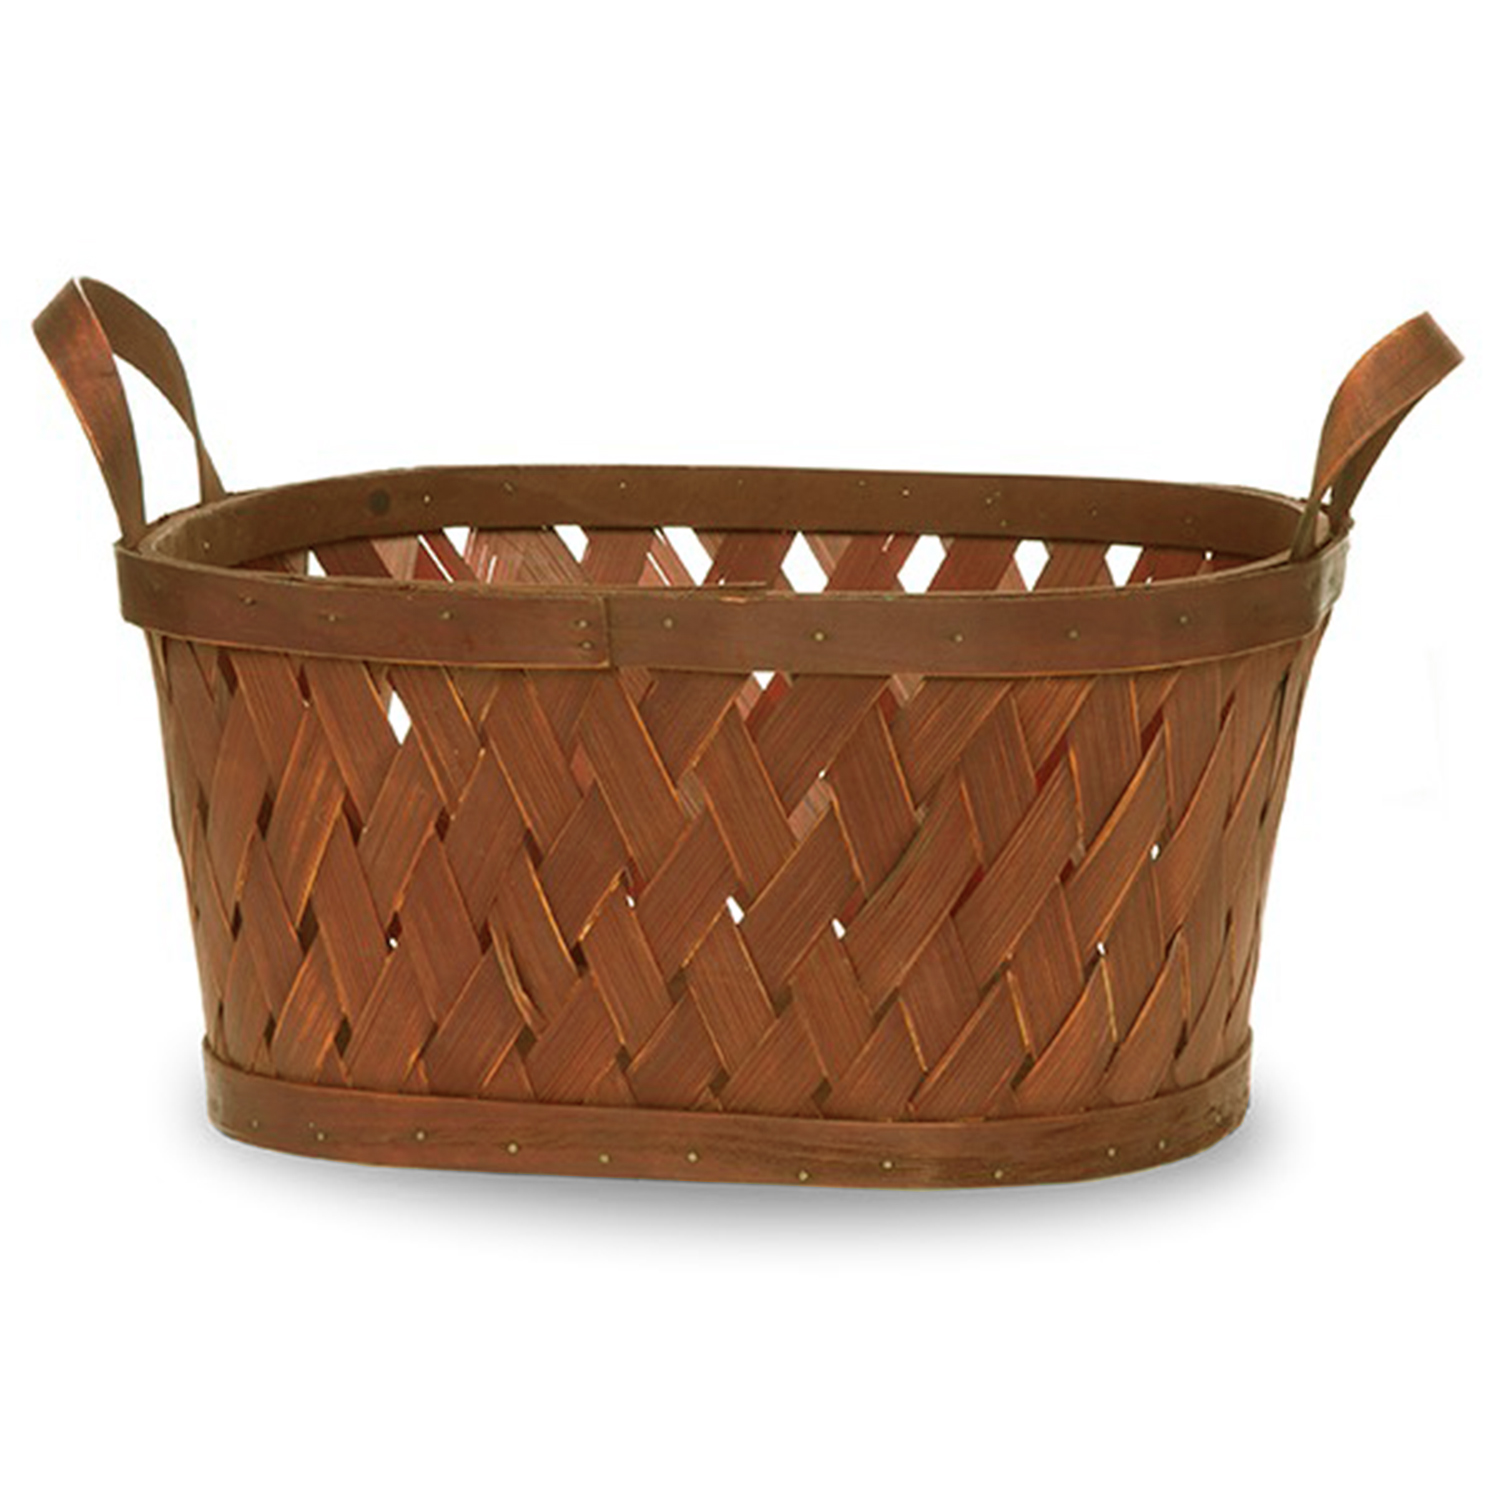 Oblong Woodchip Weave Ear Handle Basket - Large 12in